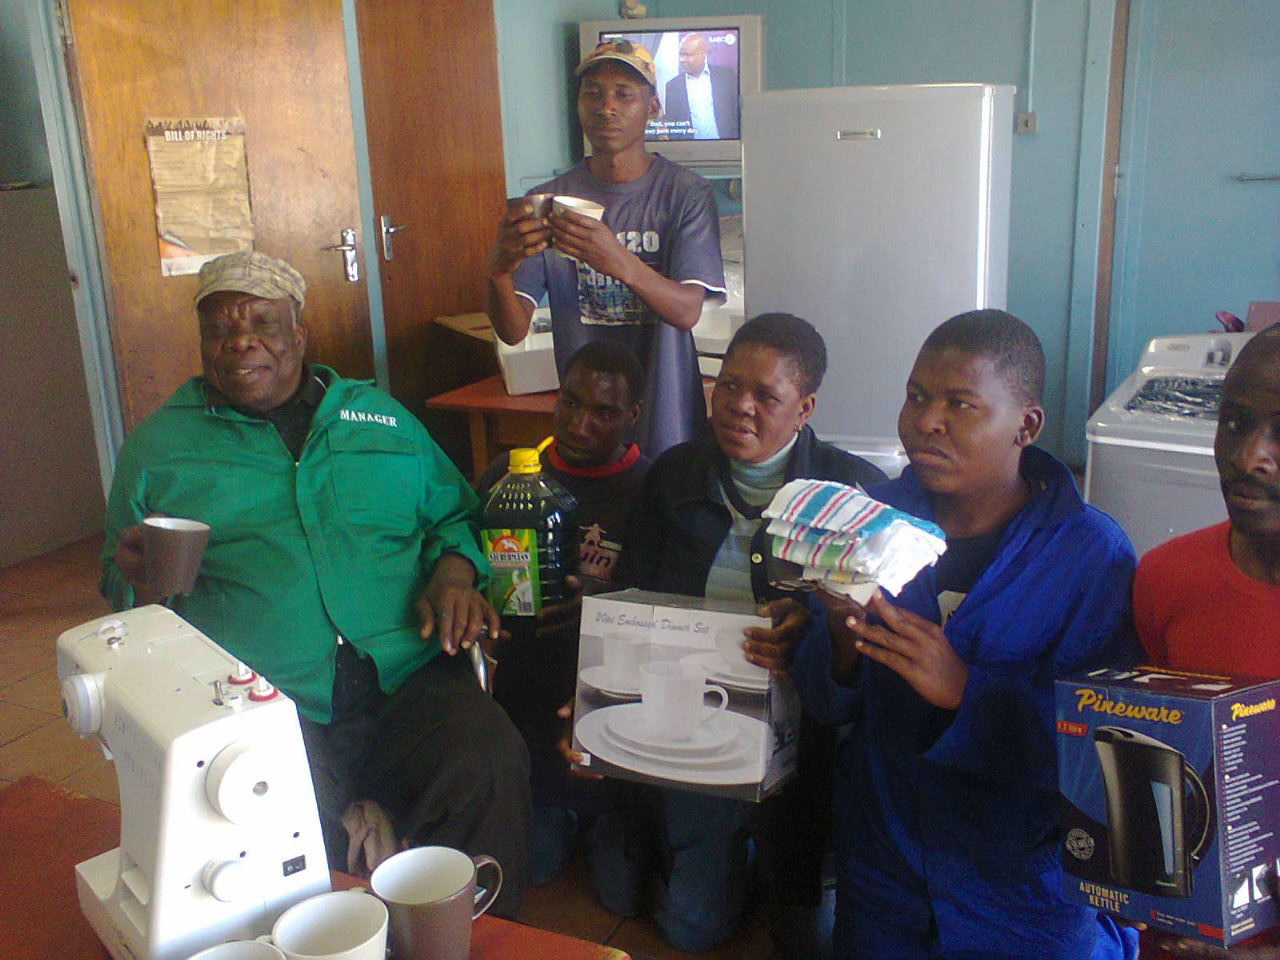 Hollywoodbets Emalahleni donated some household appliances to KwaGuqa Disabled Association as part of the Hollywoodbets Social Responsibility Programme